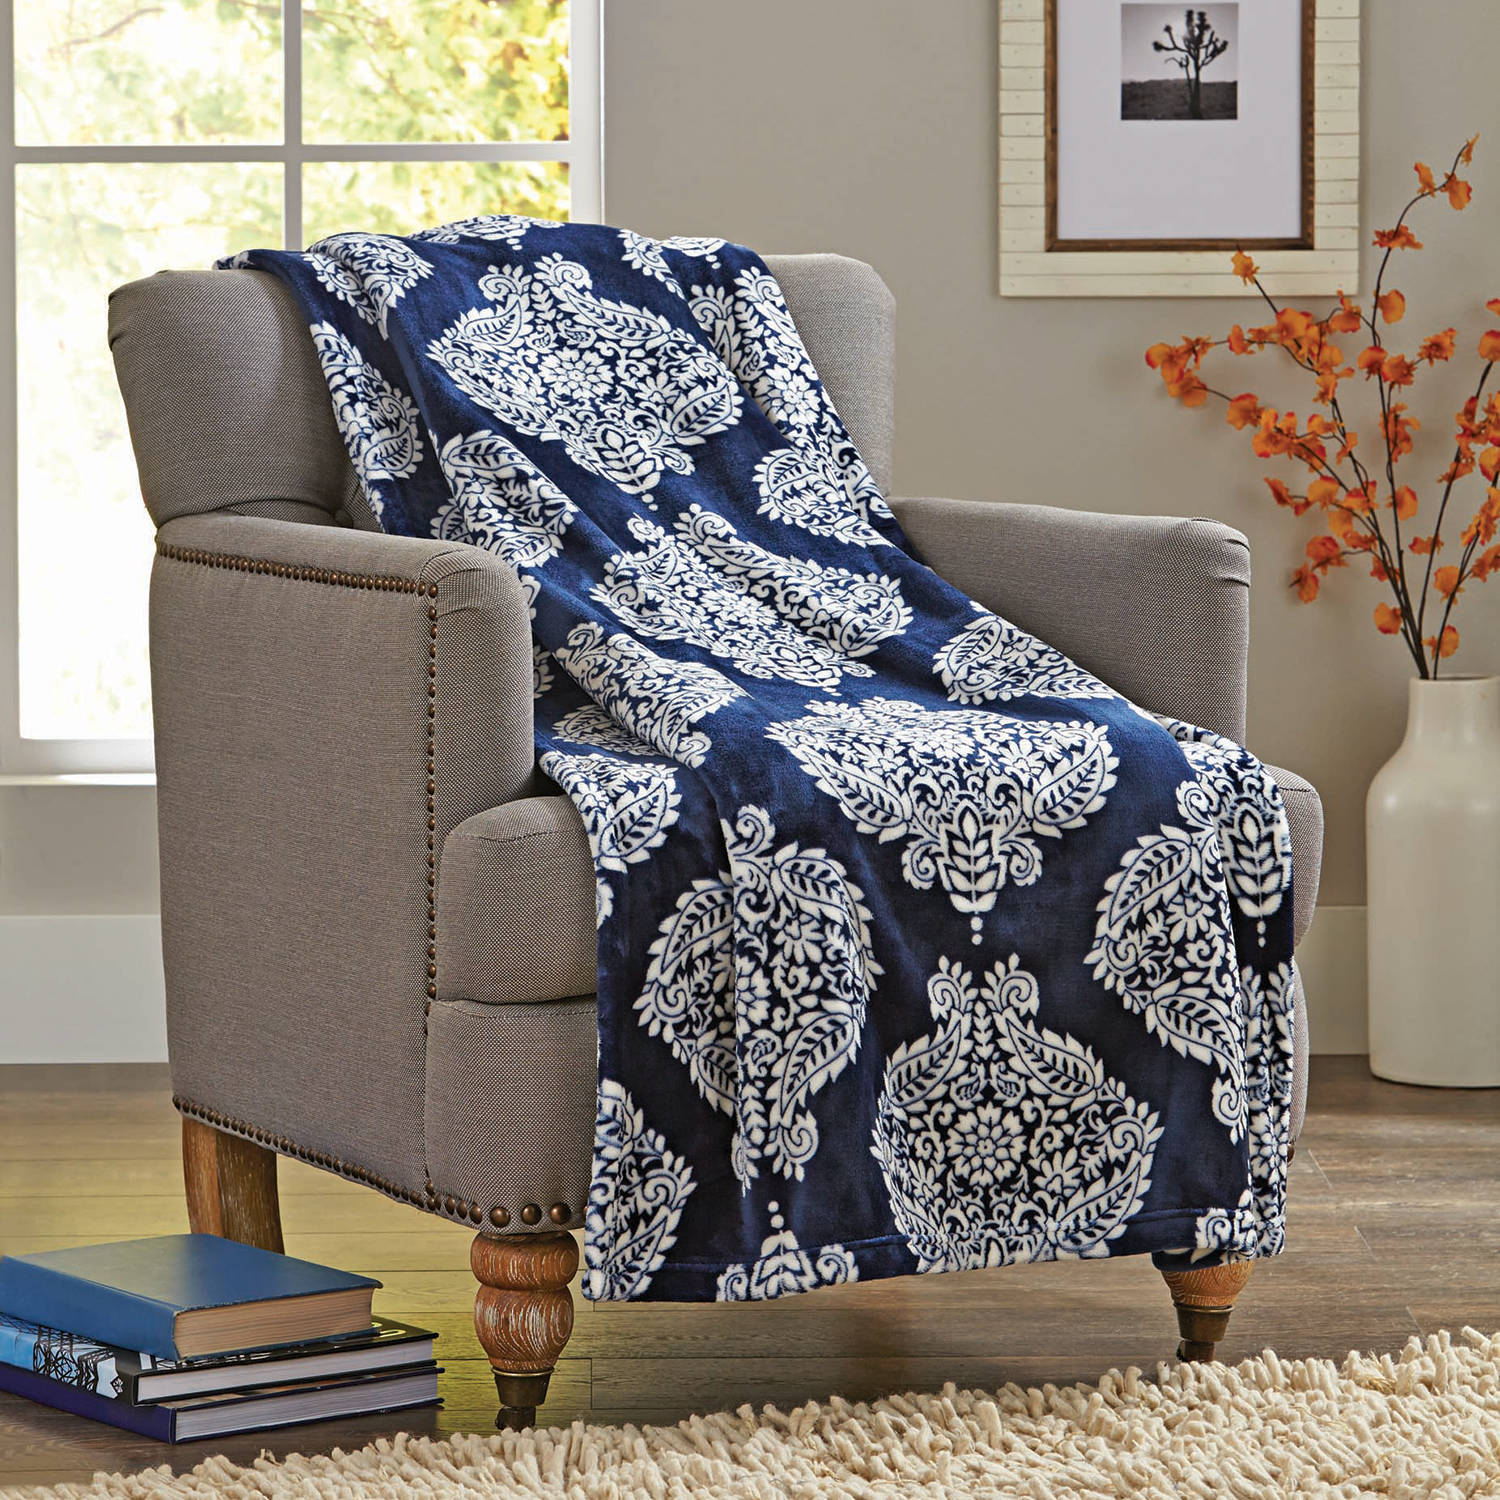 "Better Homes and Gardens Velvet Plush 50"" x 70"" Throw, Indigo Paisley Medallion"